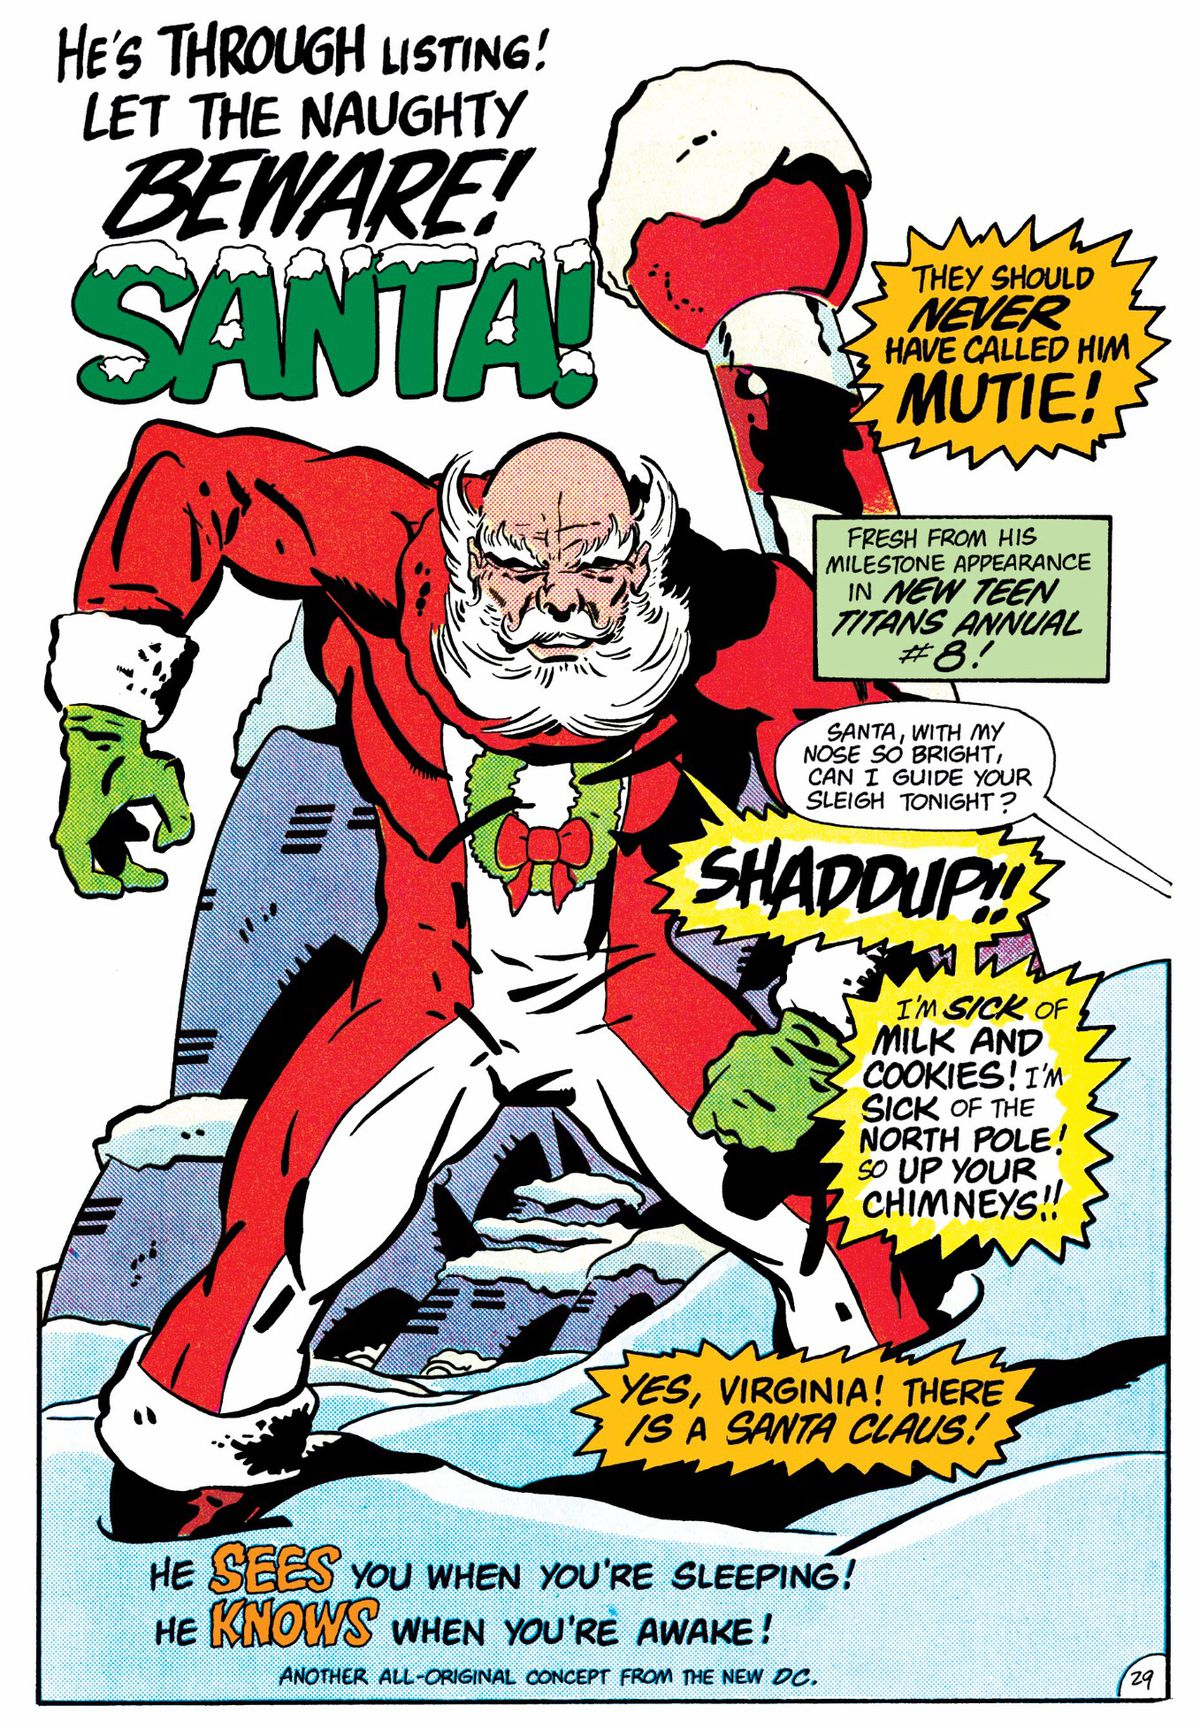 """""""He's through listing! Let the naughty beware!"""" yells a caption above a heavily muscled Santa drawn very much in Jack Kirby style. """"Shaddup!"""" he roars at Rudolph, """"I'm sick of milk and cookies! I'm sick of the North Pole! So up your chimneys!!"""" in Ambush Bug Stocking Stuffer, DC Comics (1985)."""